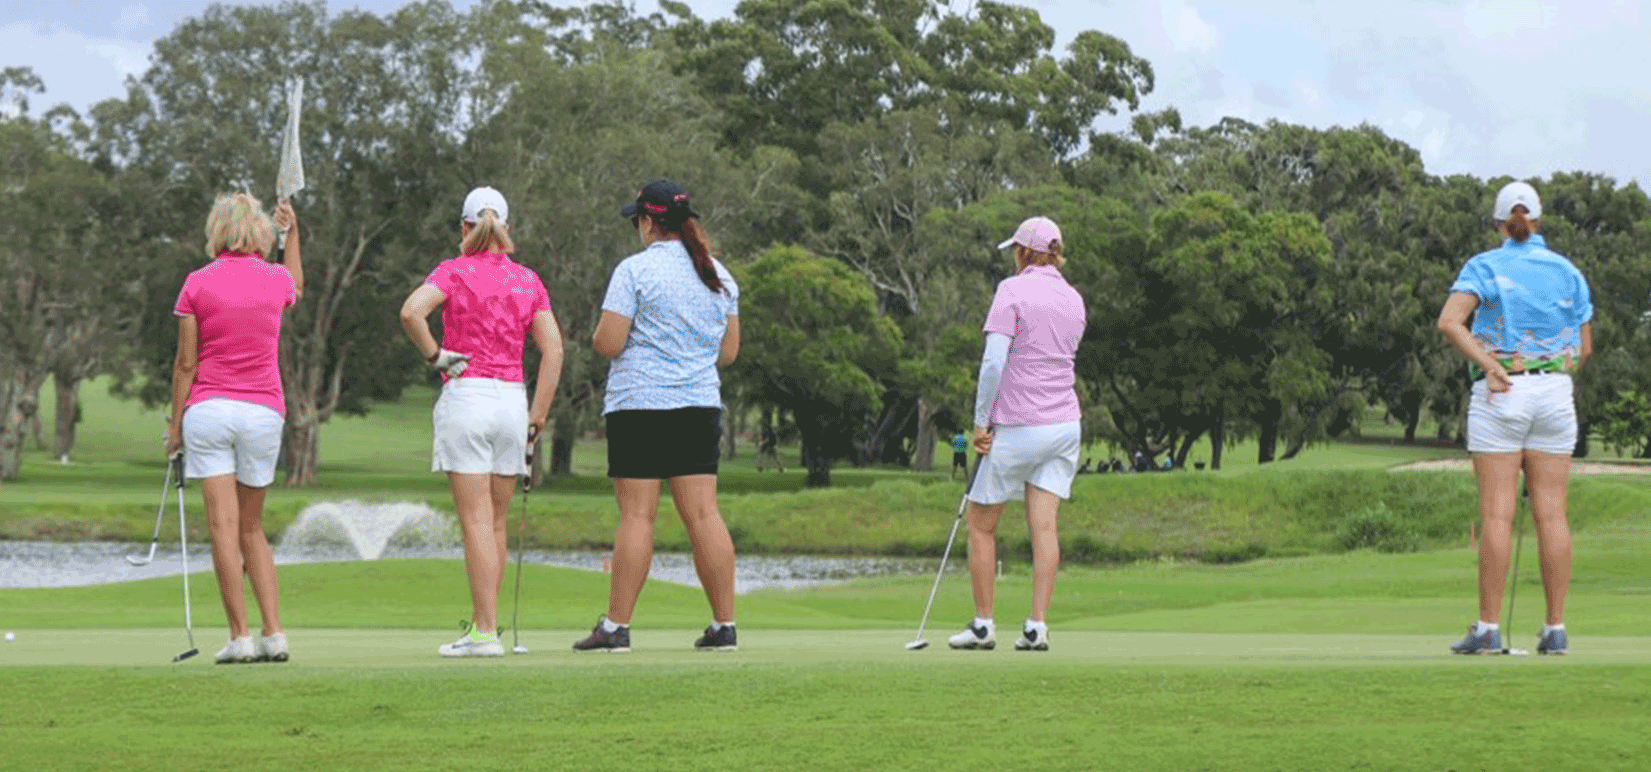 QUEENSLAND GOLF FACILITIES PLAN 2020-2030